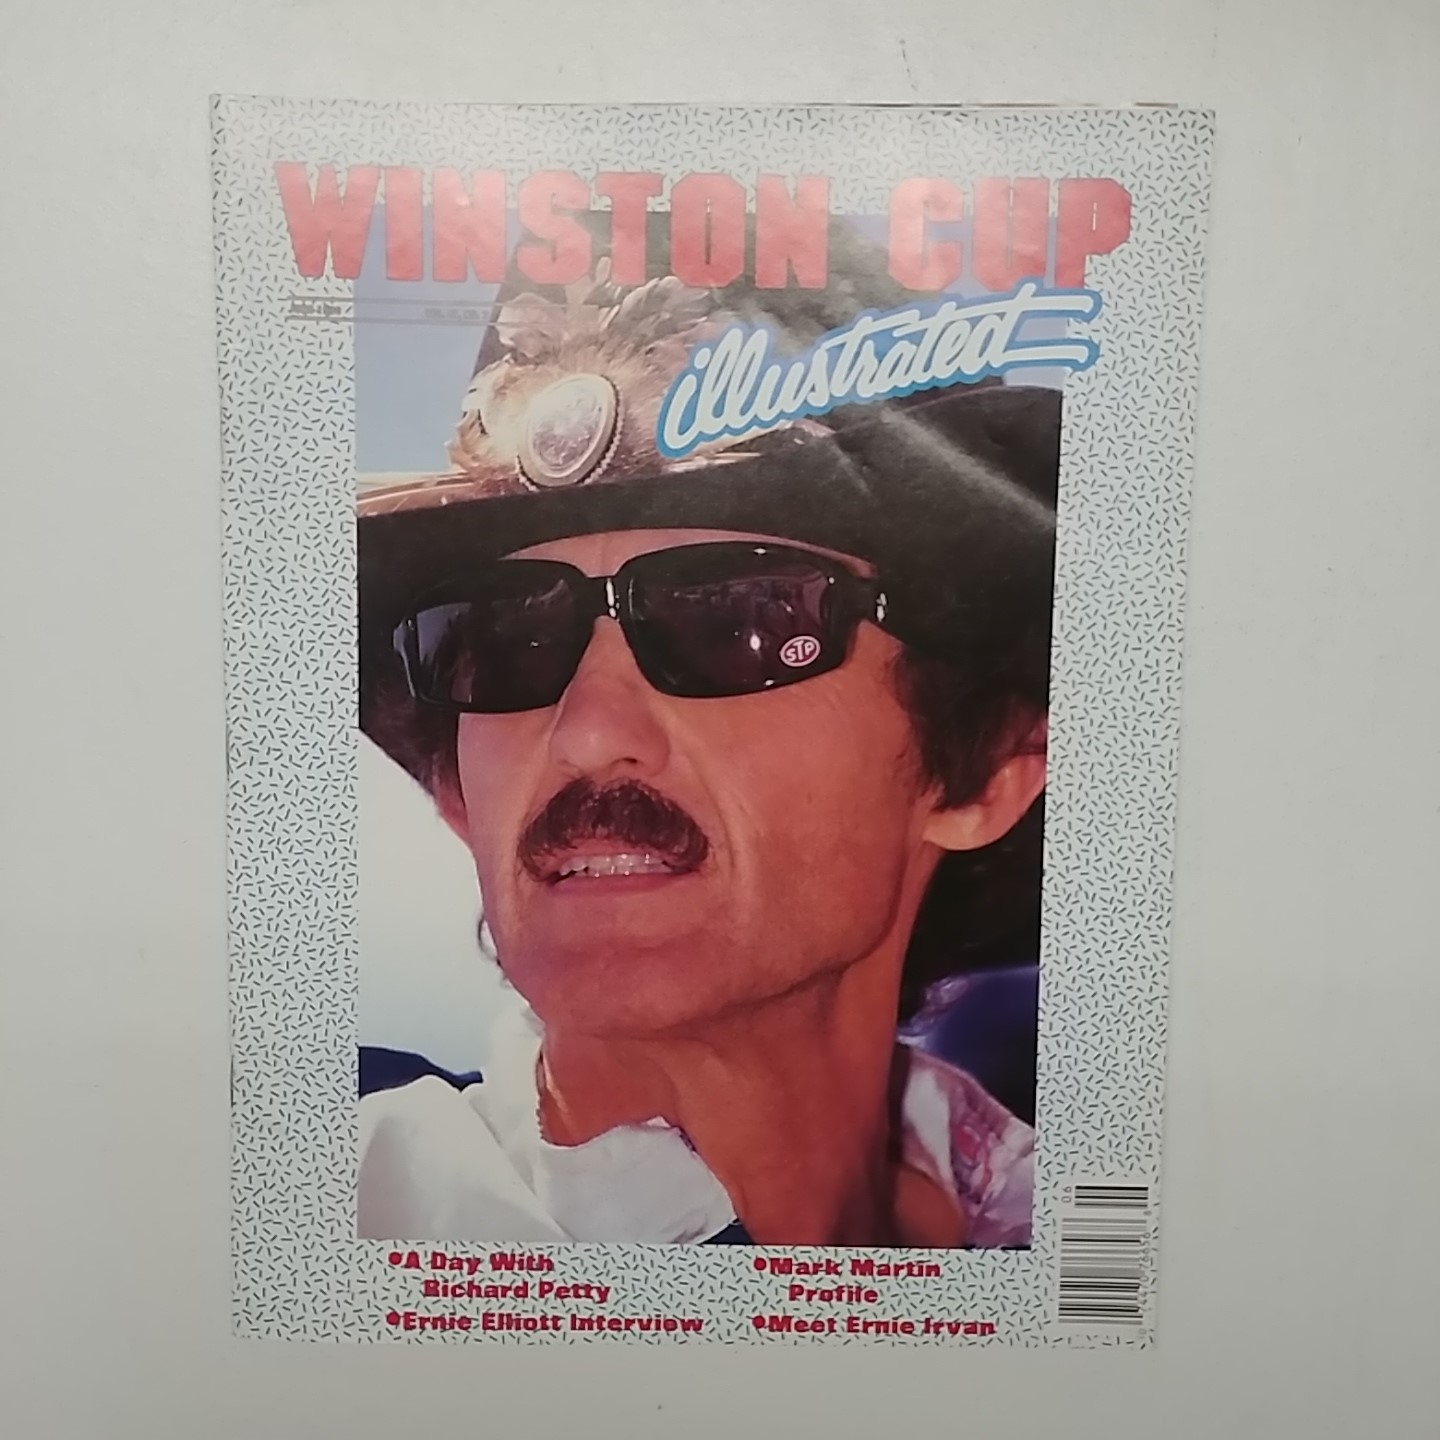 1990 Winston Cup Illustrated June